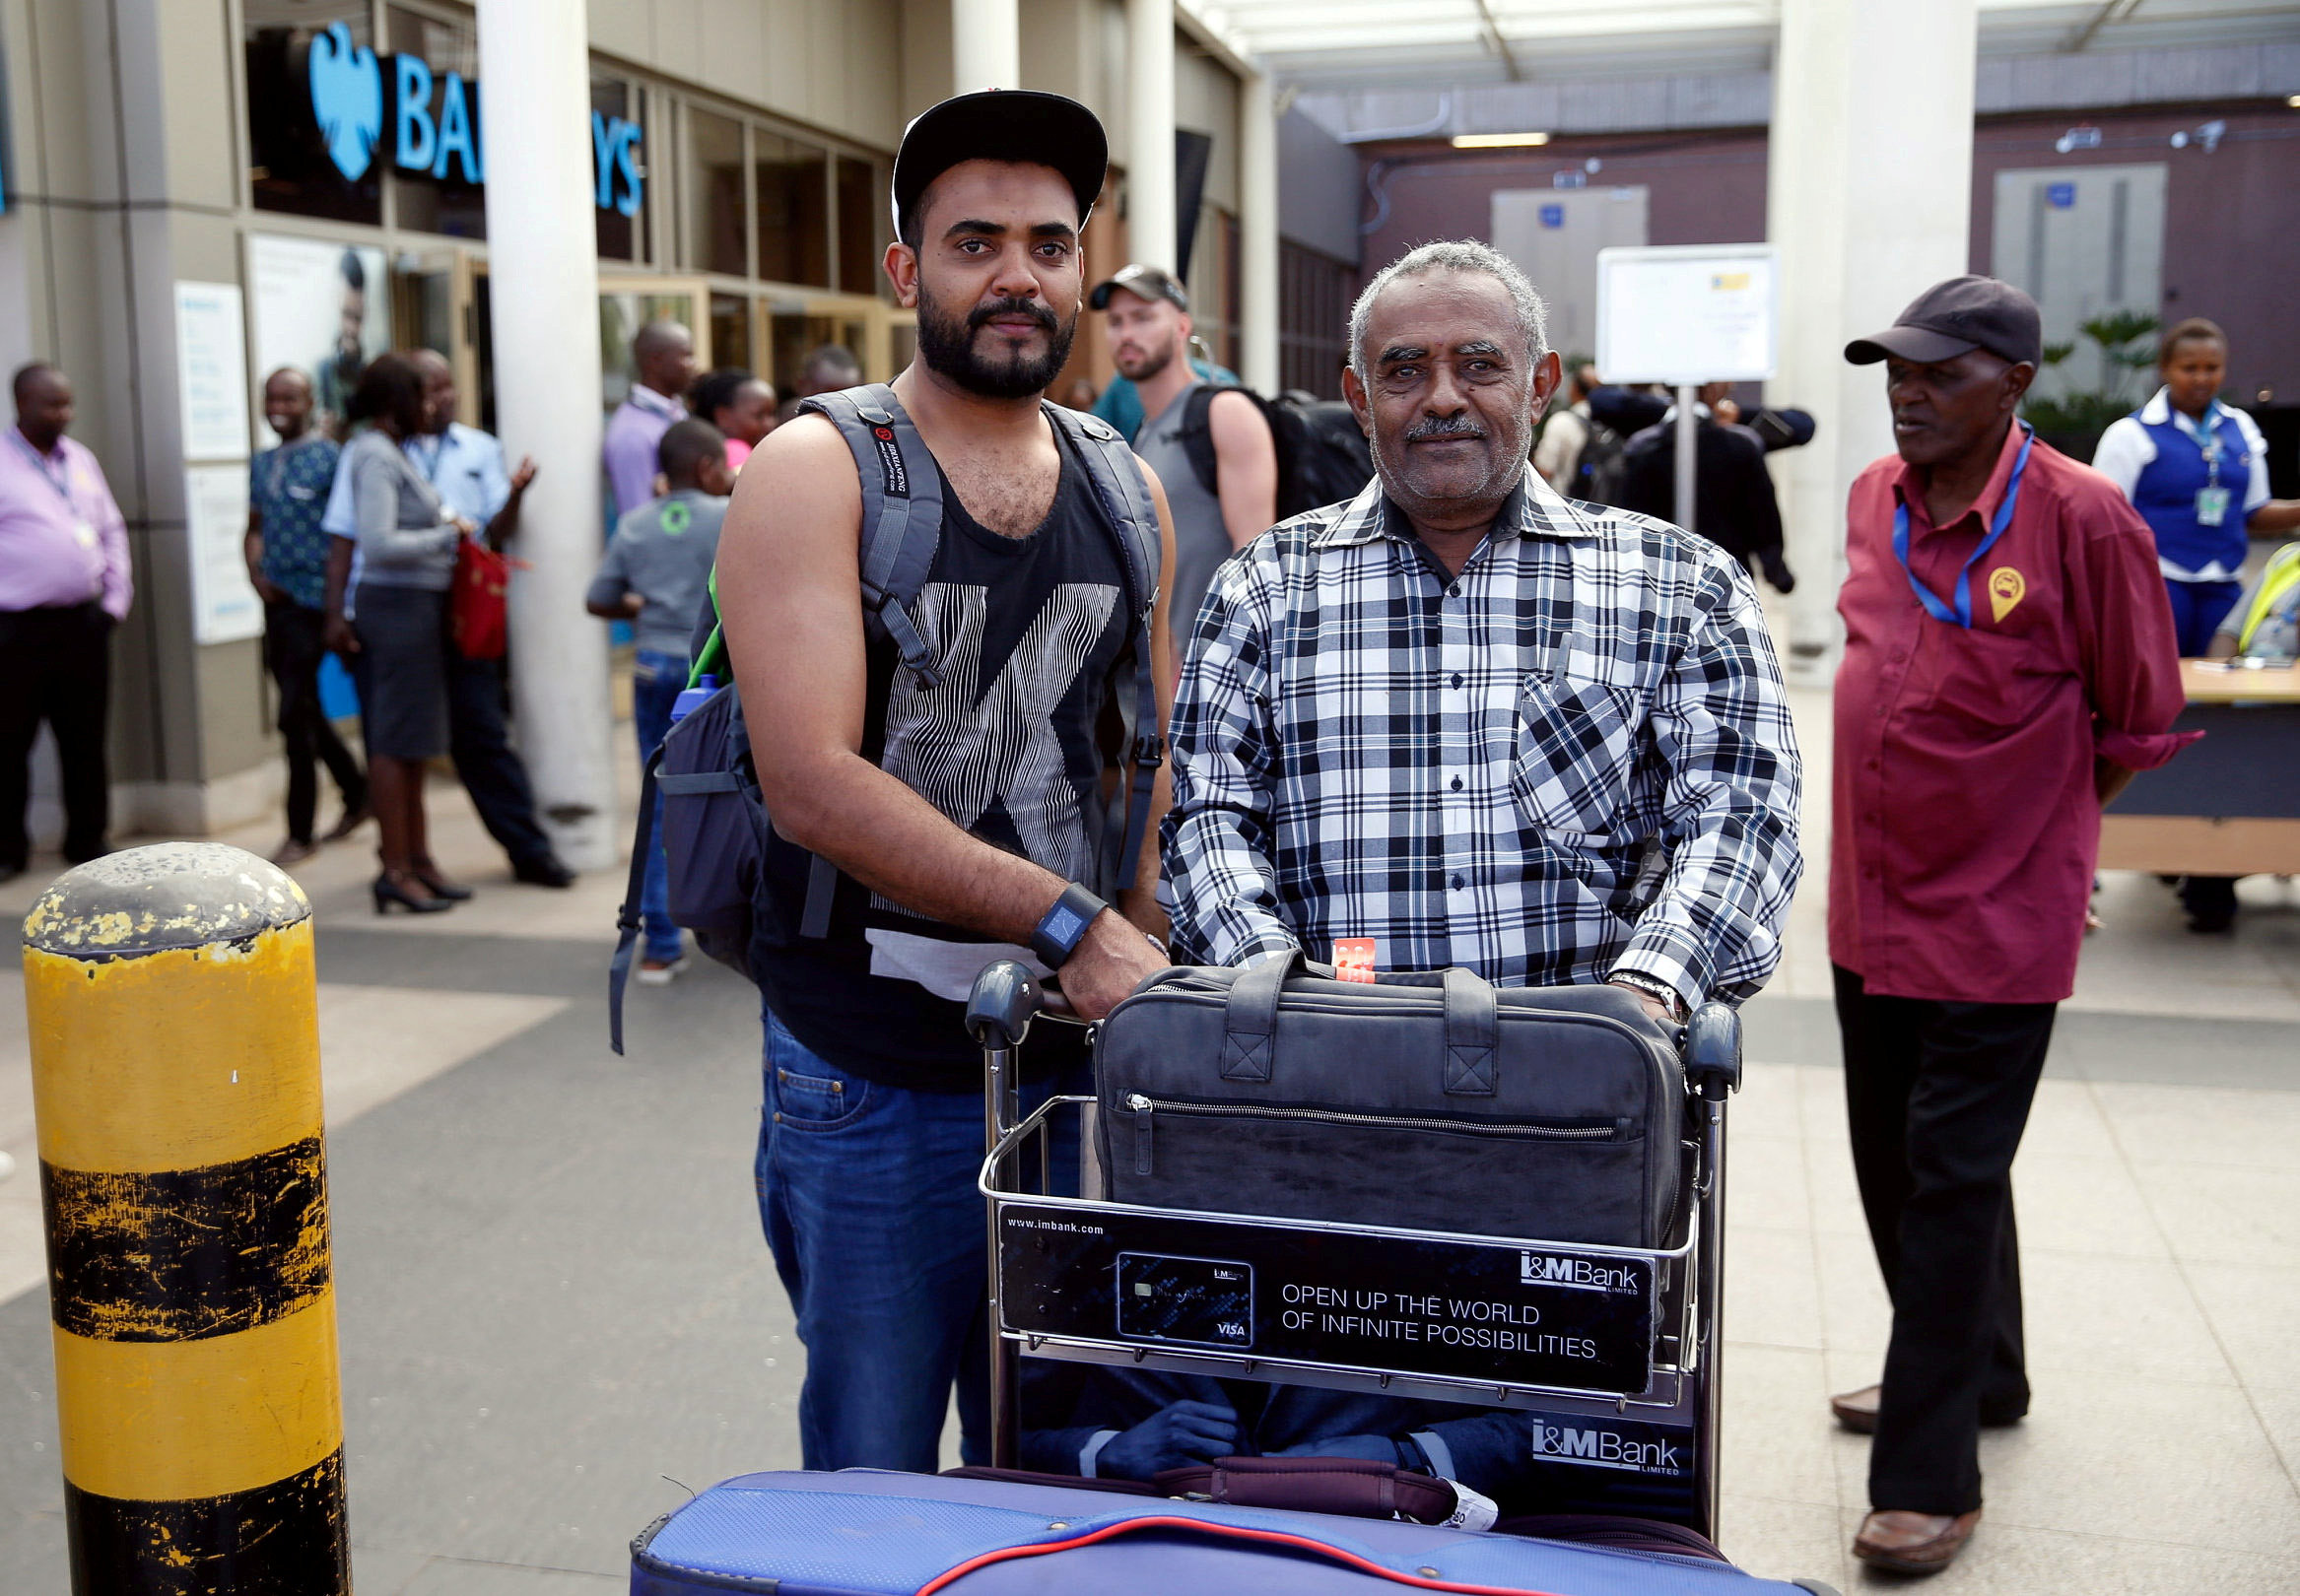 Ahmed Khalid, left, says he was supposed to travel to Nairobi on the Ethiopian Airlines Flight 302 that crashed but missed the flight because of a delay. His father Khalid Bzambur, right, picked him up at Jomo Kenyatta International Airport in Nairobi on March 10.